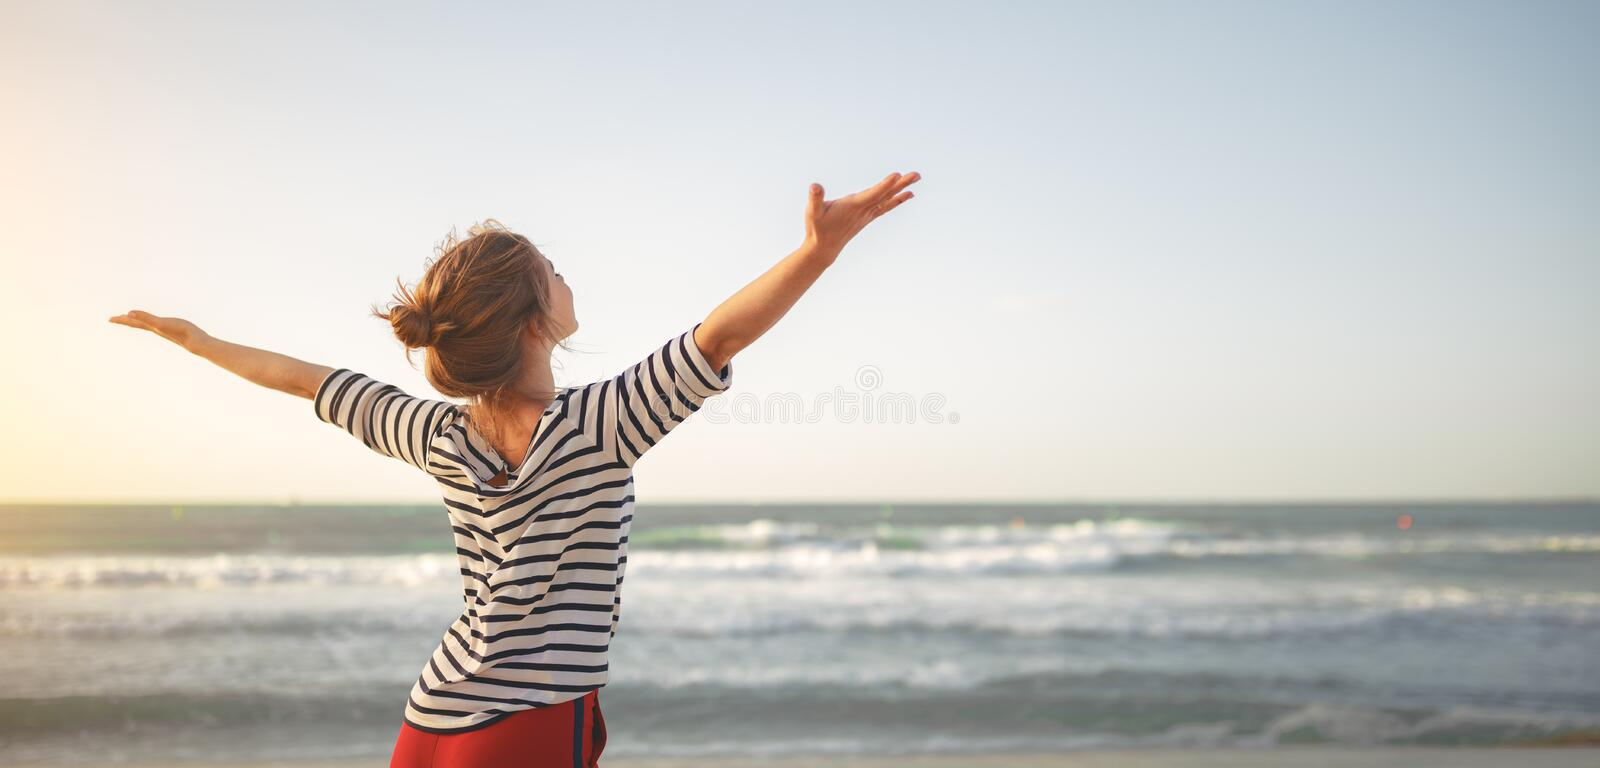 Happy woman enjoying freedom with open hands on sea. Happy young woman enjoying freedom with open hands on sea royalty free stock image